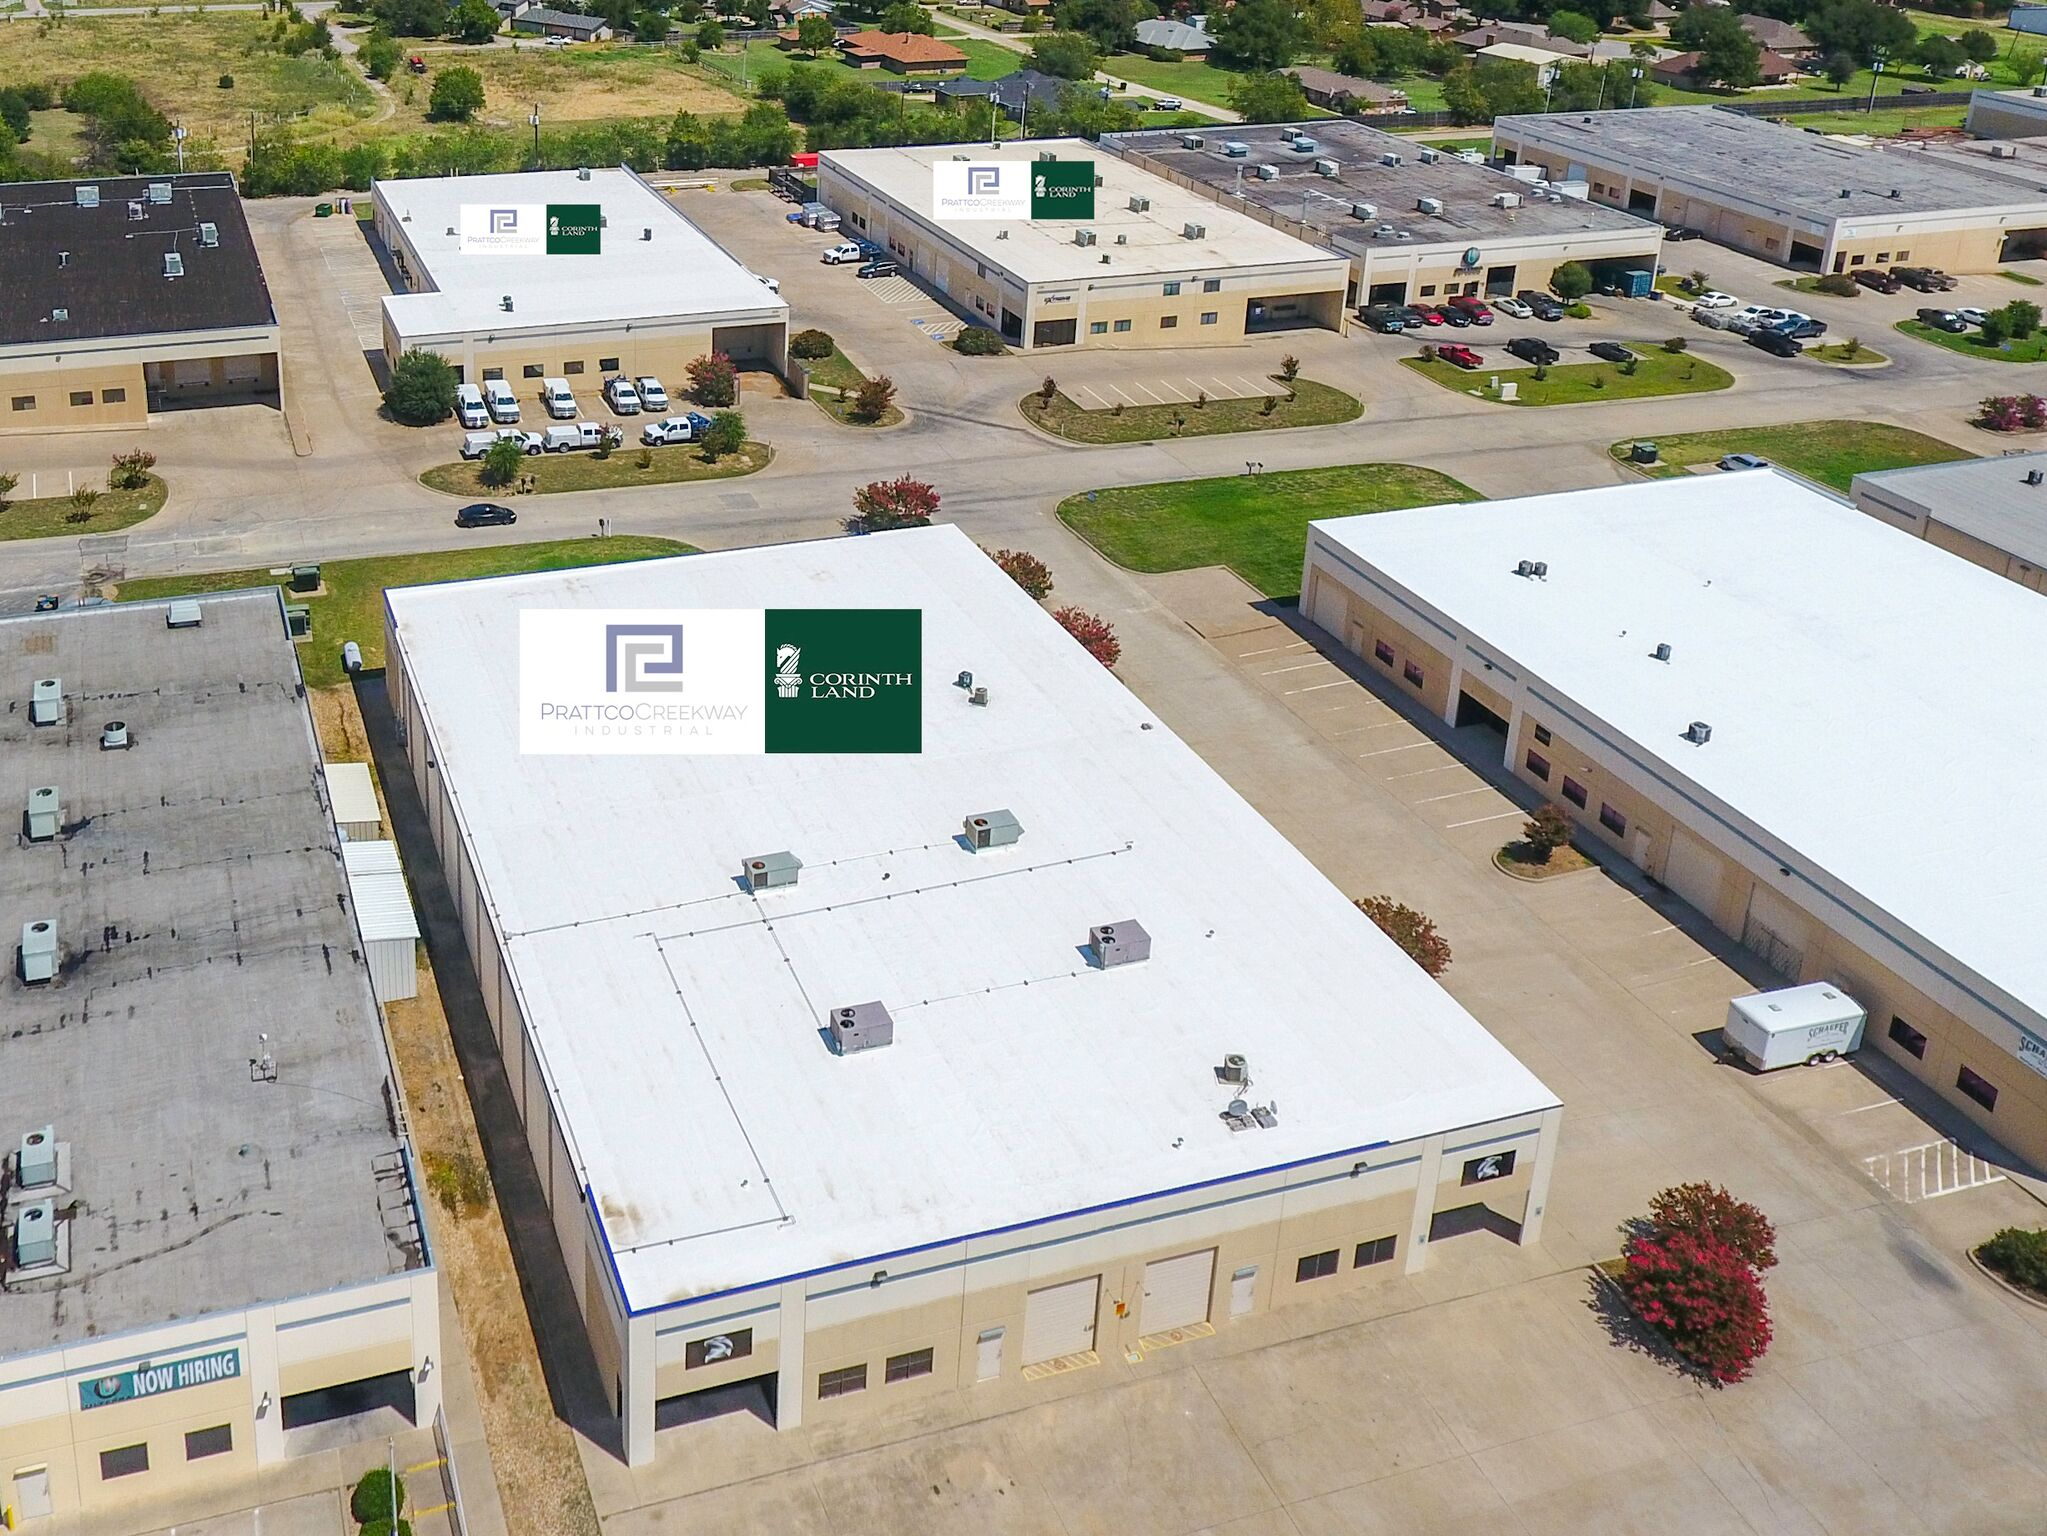 Fort Worth-Based Corinth Land Co. and Dallas-based Prattco Creekway Industrial (PCI) acquired three buildings in the IH-20 West Business Park west of Fort Worth just miles from the Walsh Ranch development. The 77,640 SF three-building business park has five tenants and is 94 percent occupied. Photo Credit: Epic Foto Group.